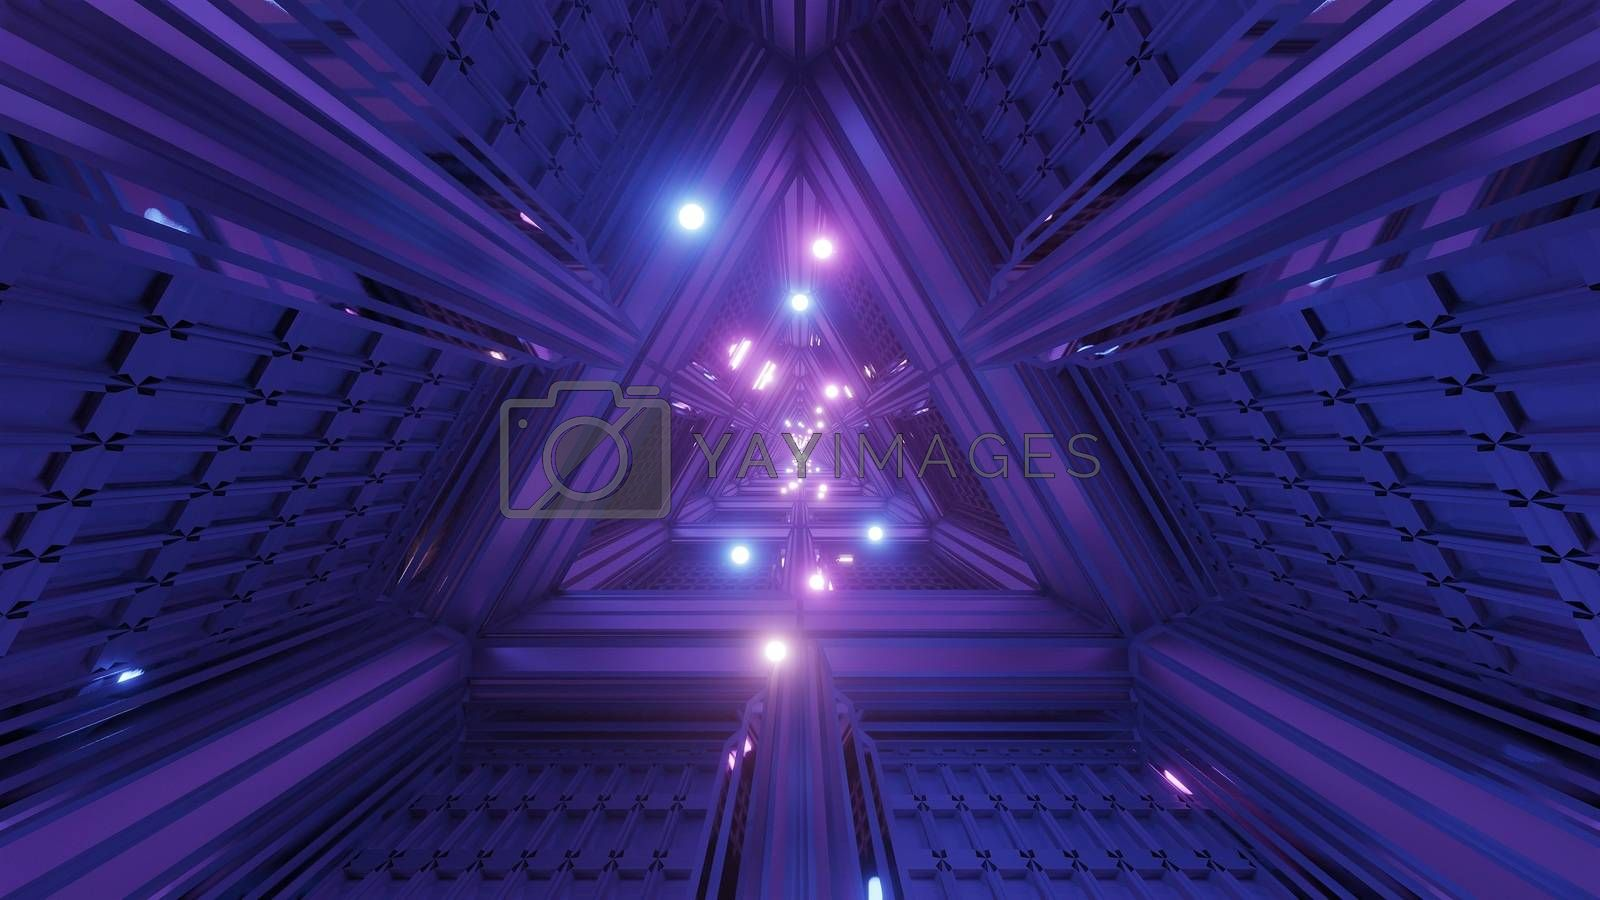 glowing spheres particles fly through triangle space tunnel corridor 3d illustration backgrounds wallpaper graphics artworks, futuristic scifi tunnel 3d rendering design